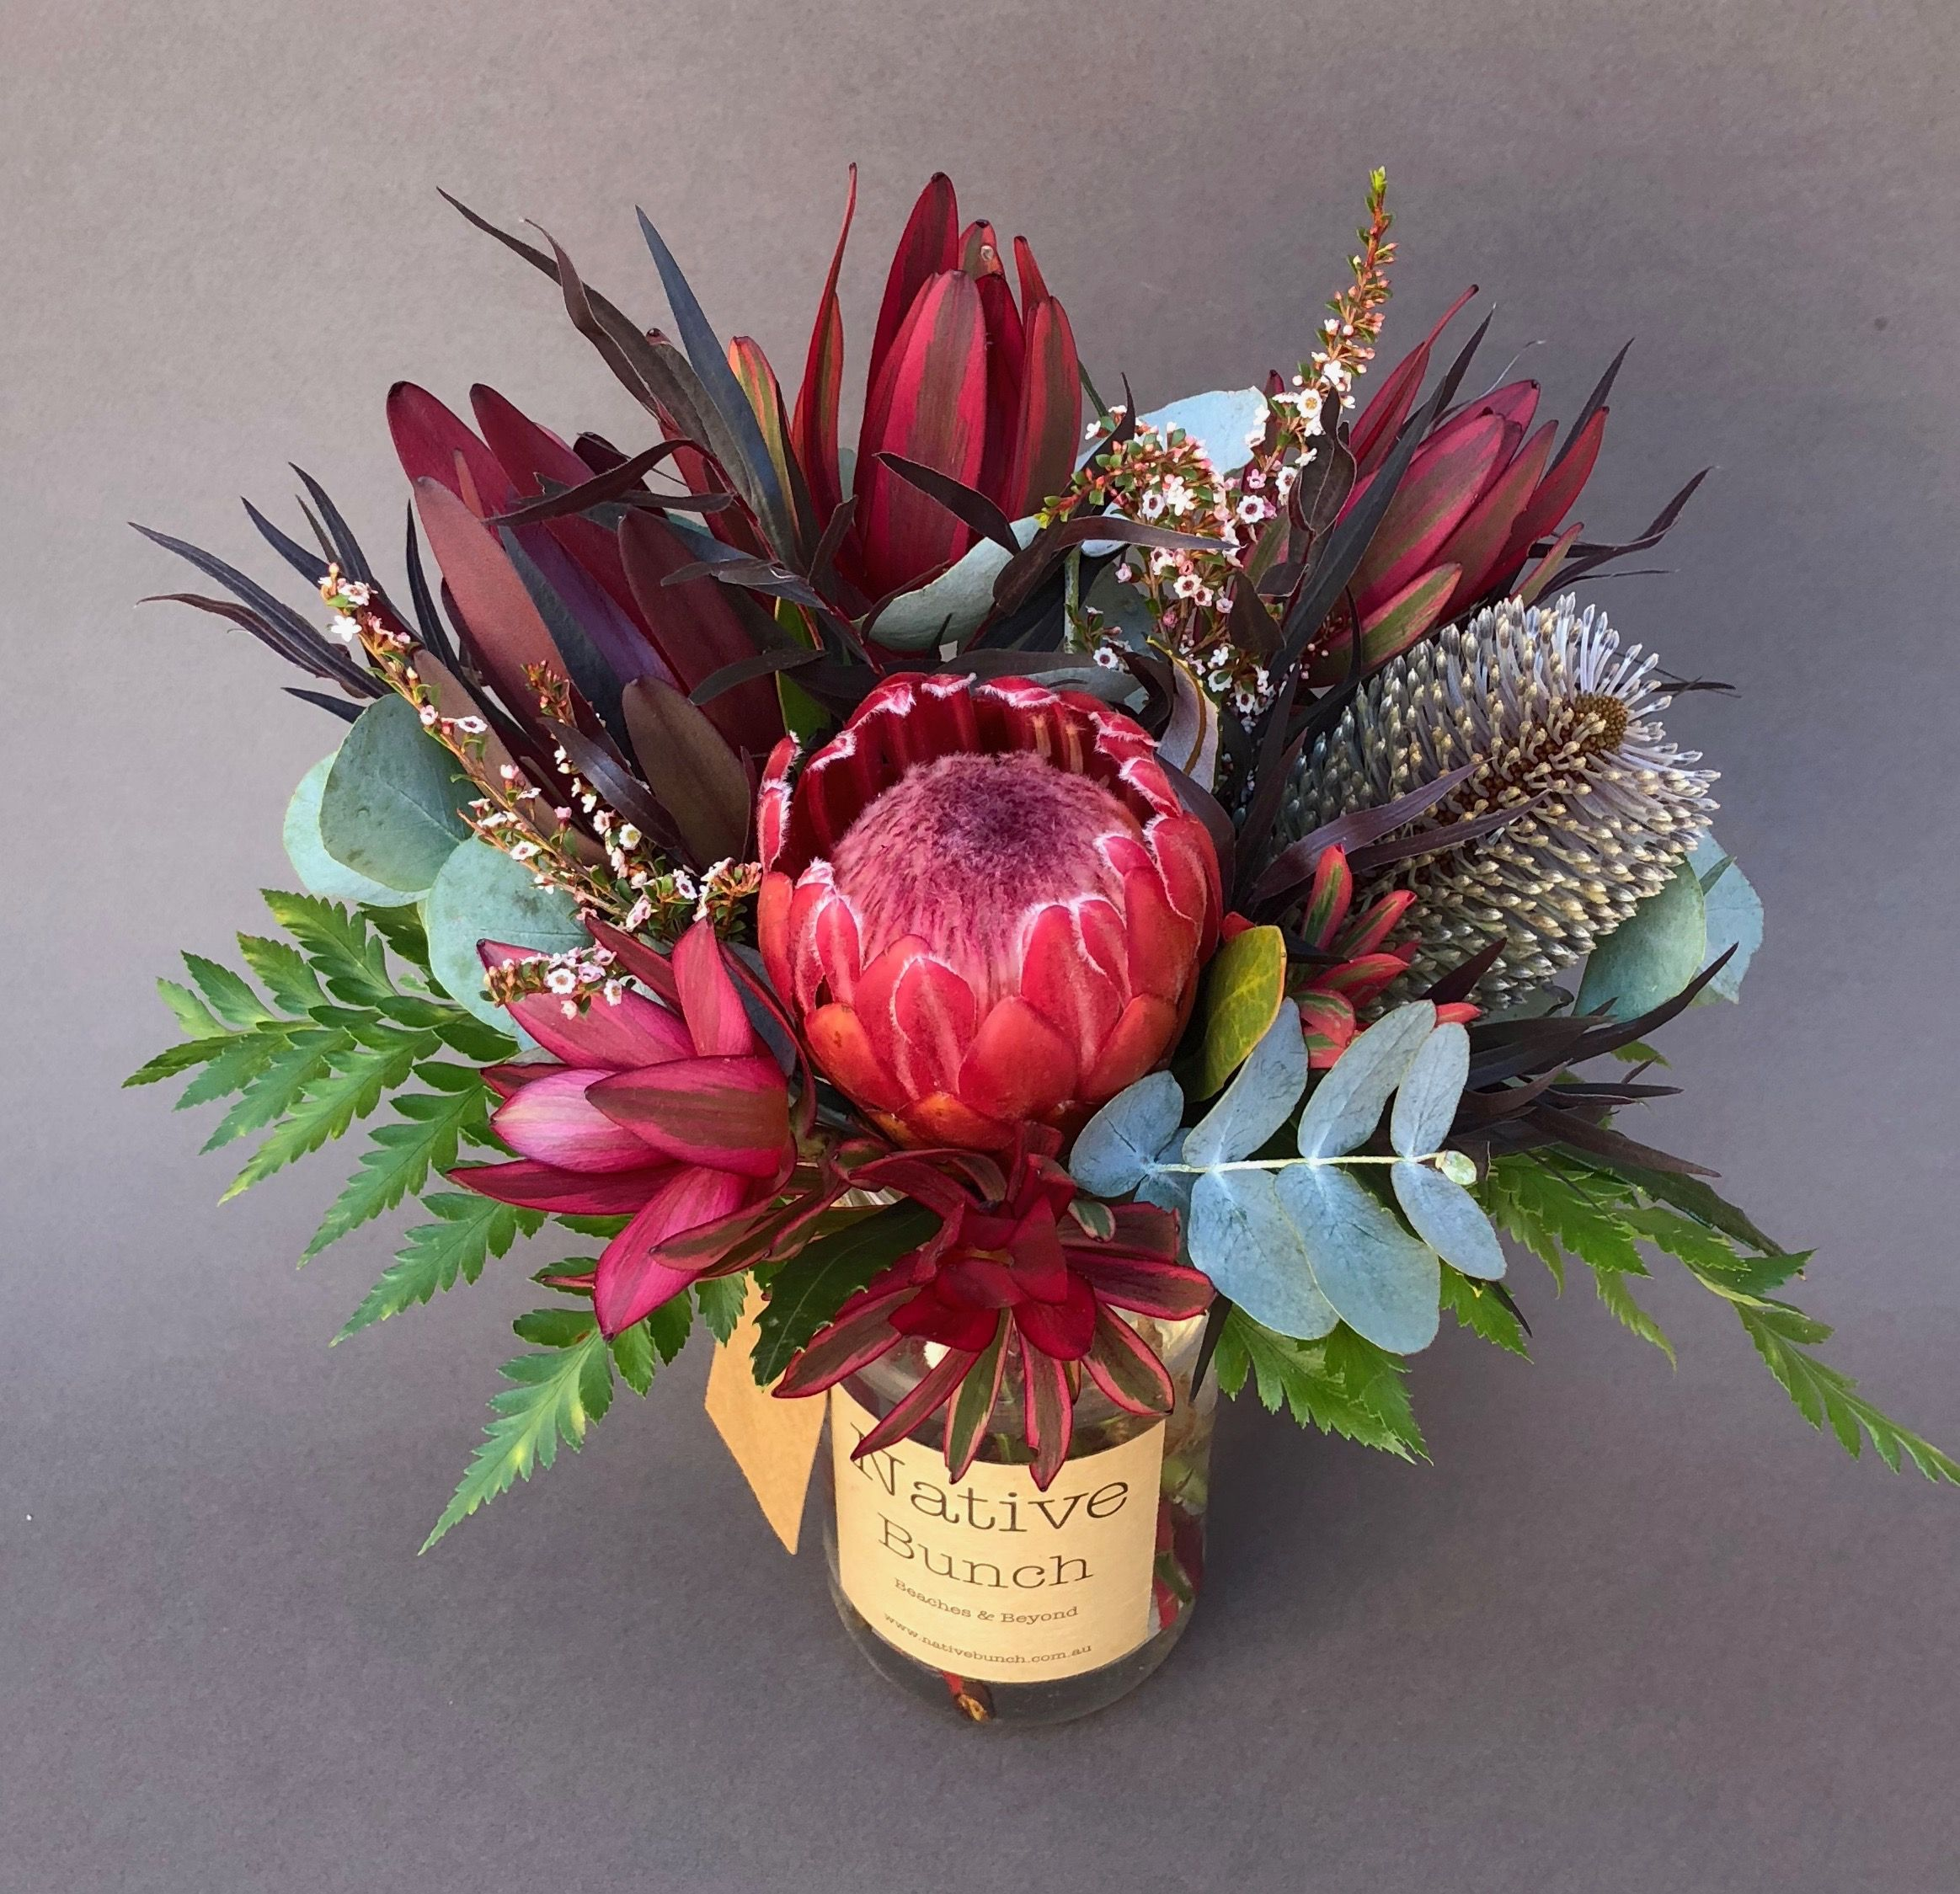 Native Flower Posy Of Protea Banksia Thryptomene Leucadendron After Dark Foliage Flower Arrangements Table Flower Arrangements Flower Arrangement Designs